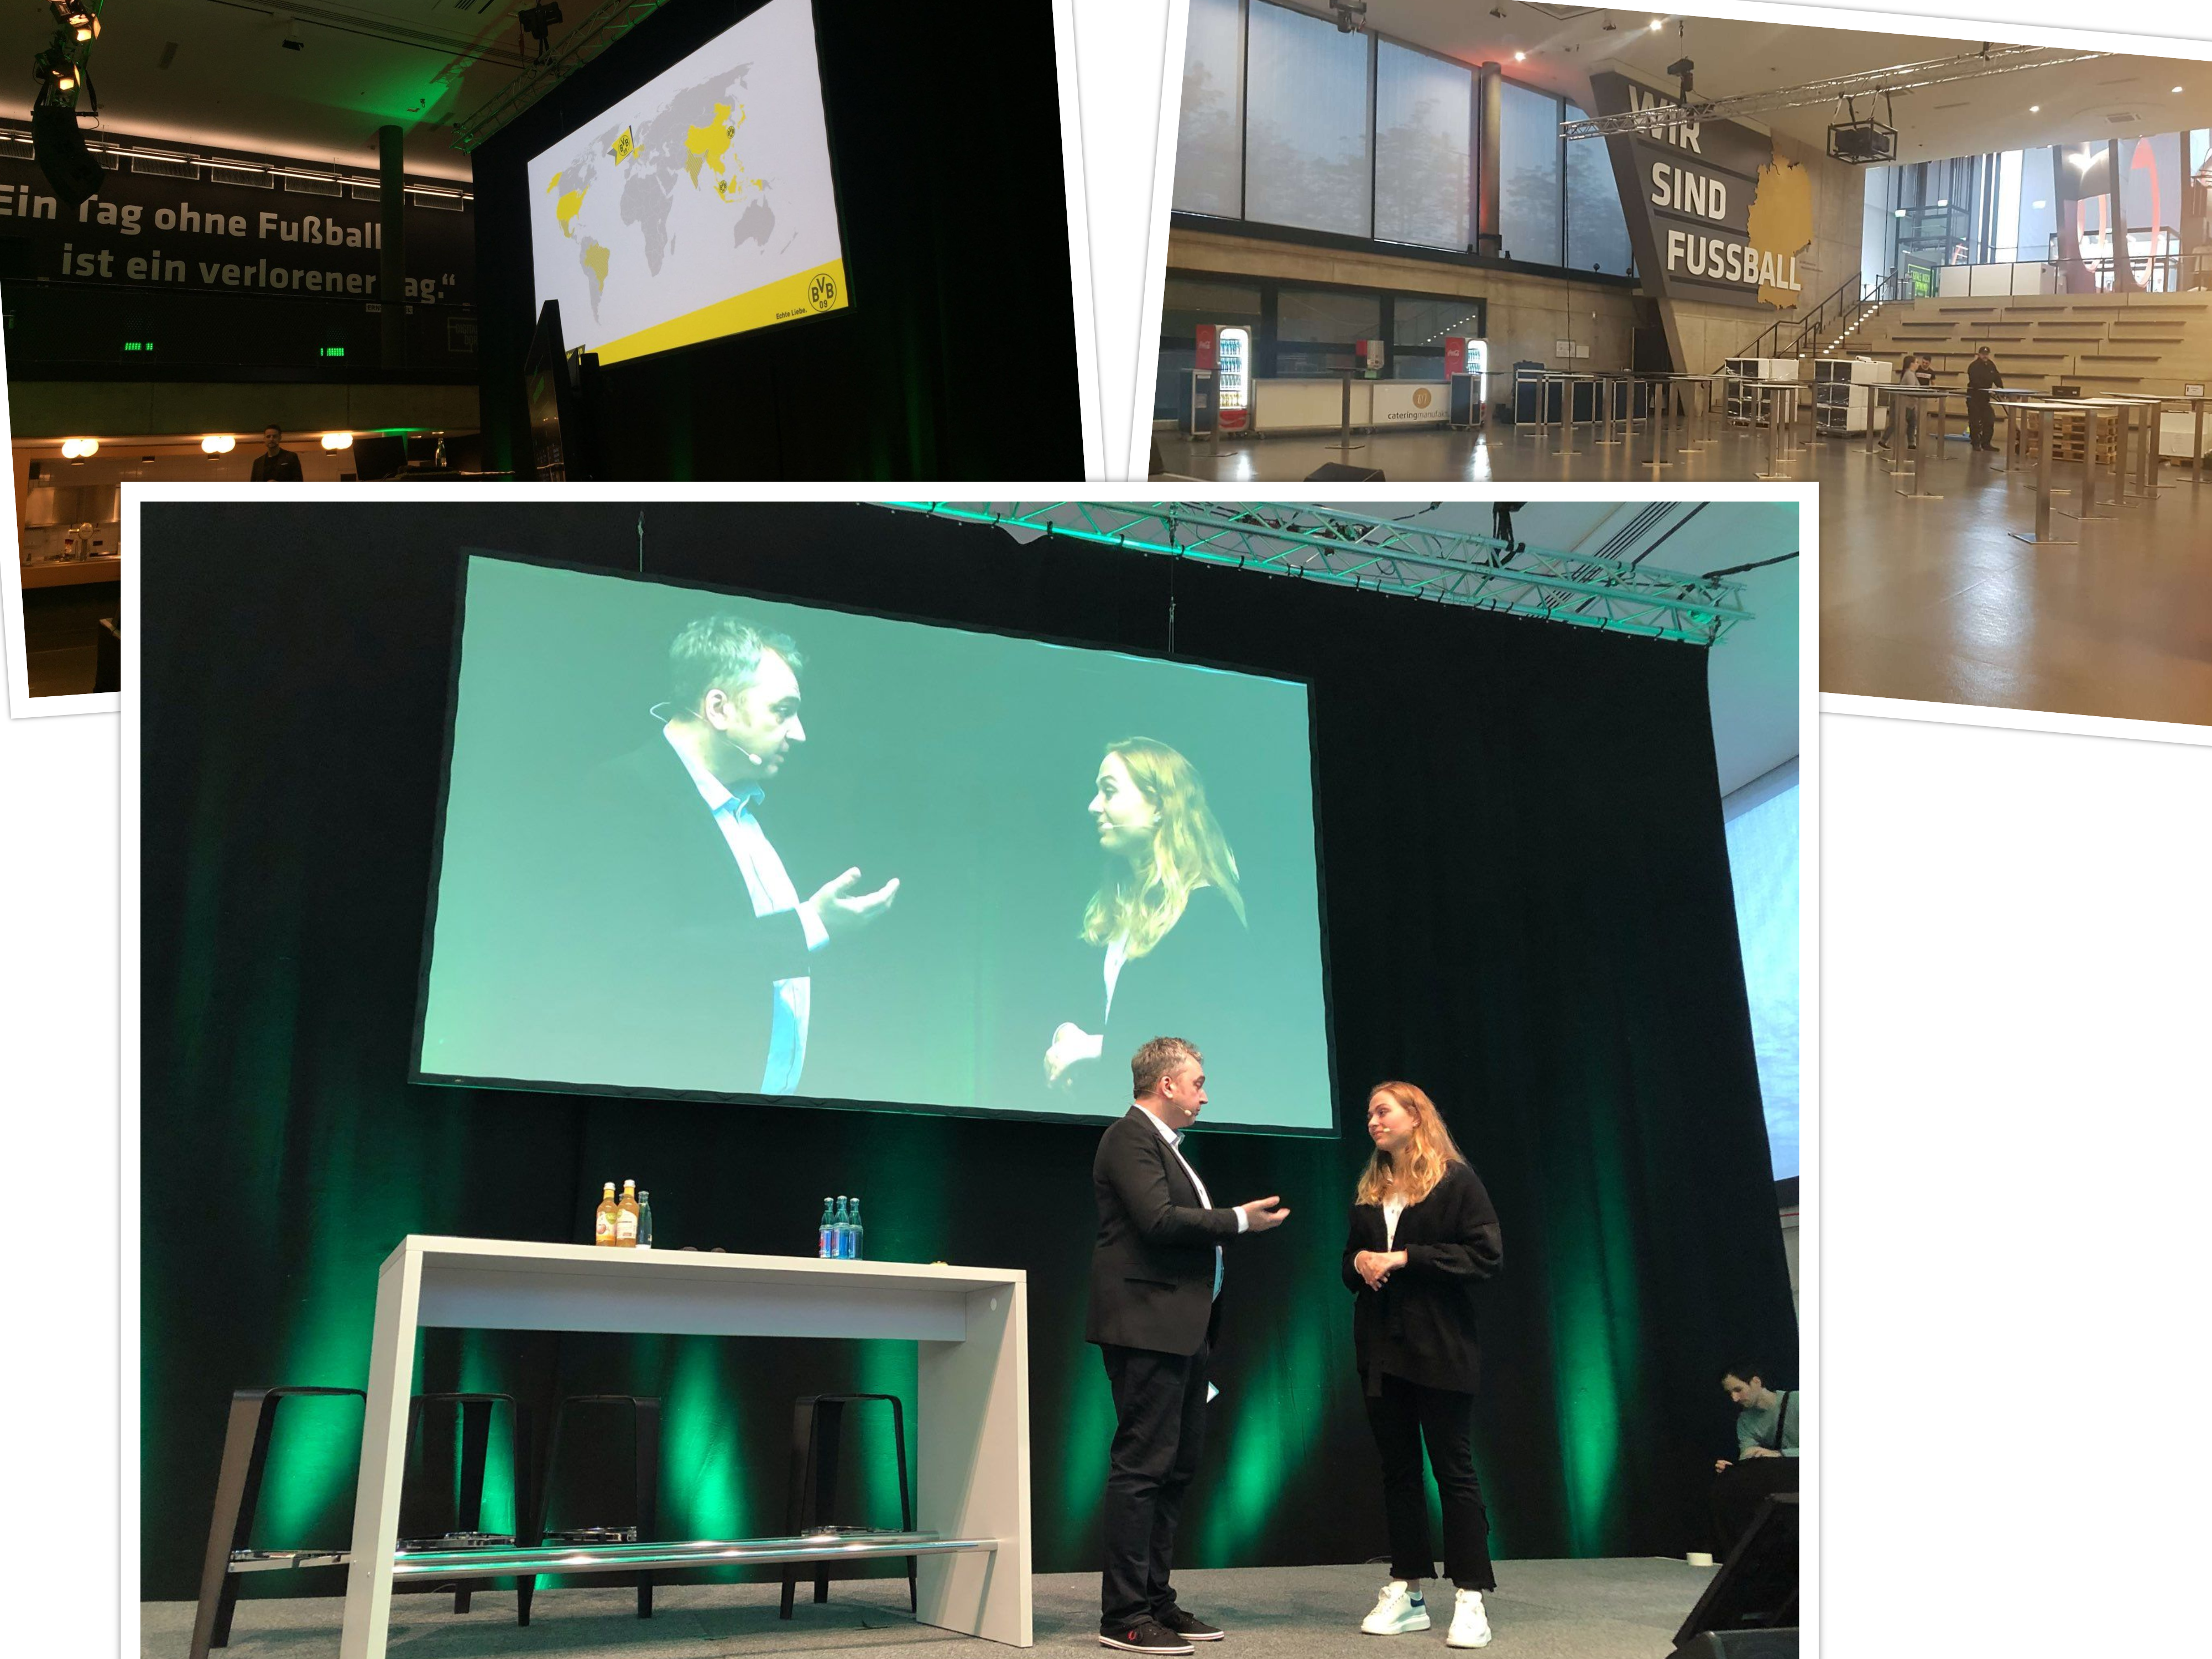 Pictures from DIVR Business Award 2019 at the German Football Museum in Dortmund